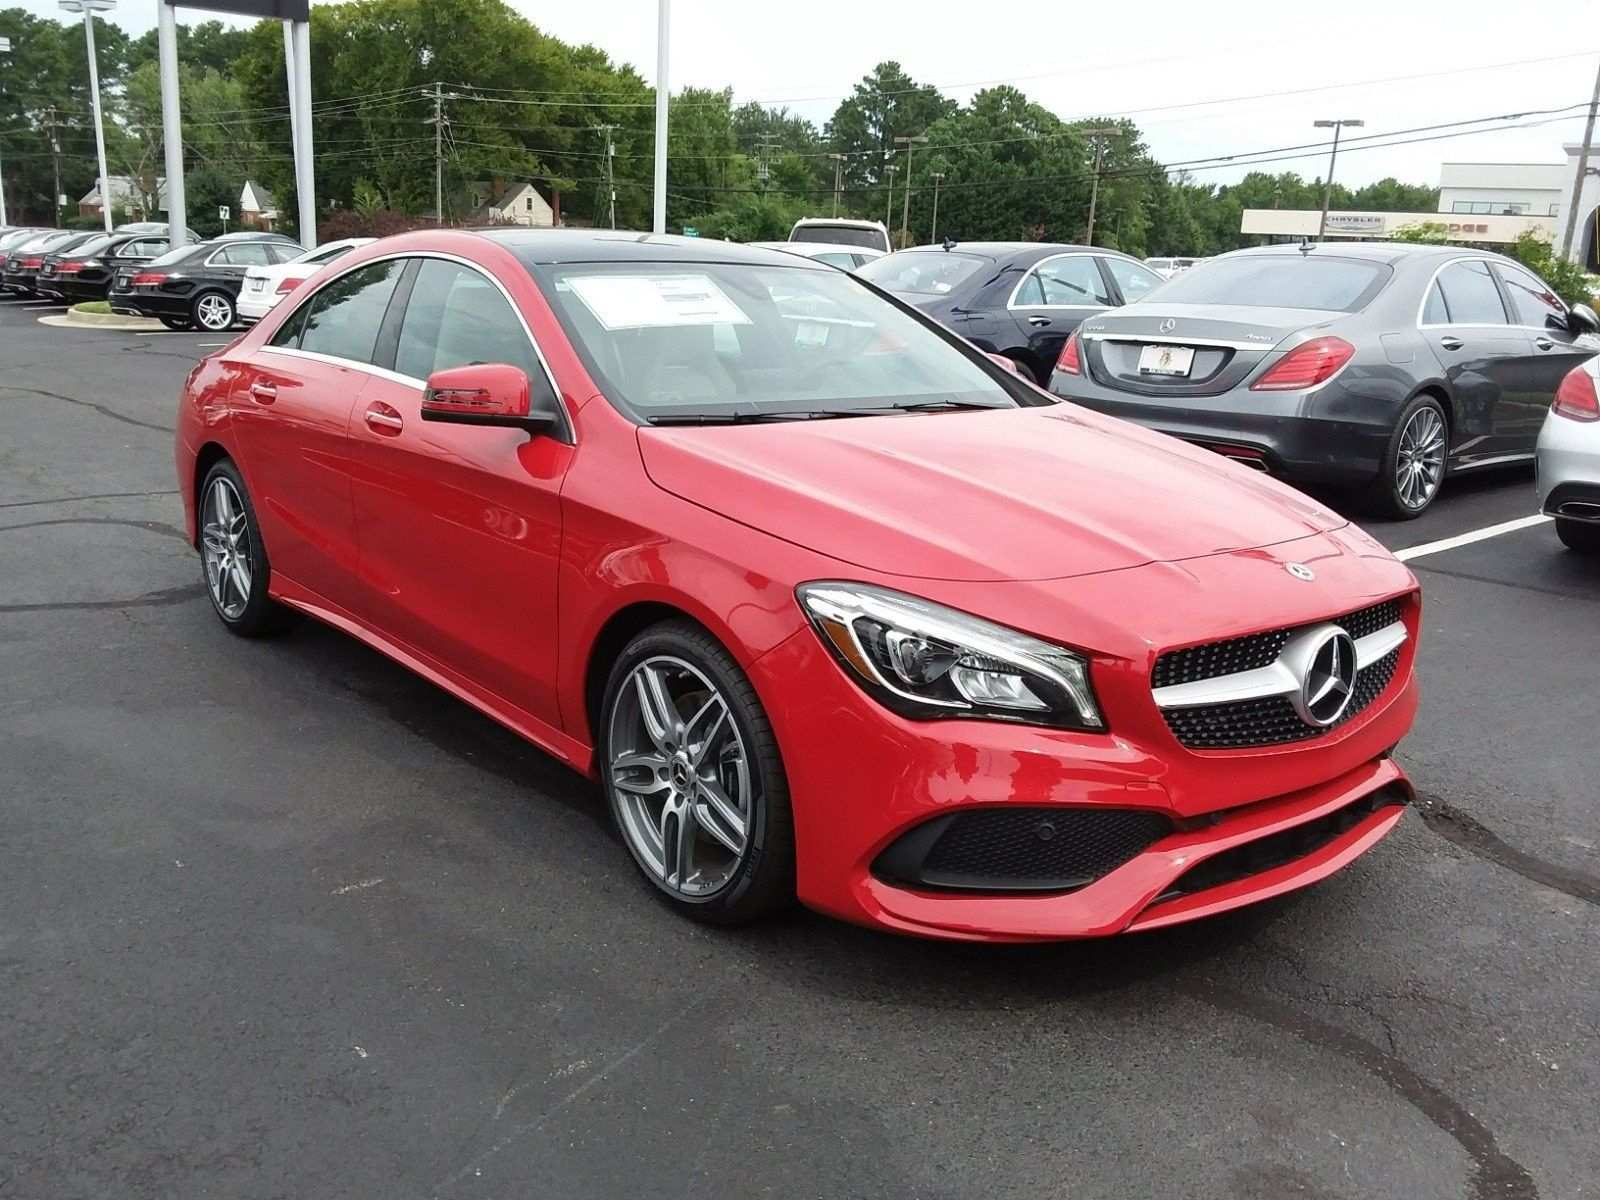 73 All New Mercedes A Class 2020 Exterior Date Price by Mercedes A Class 2020 Exterior Date